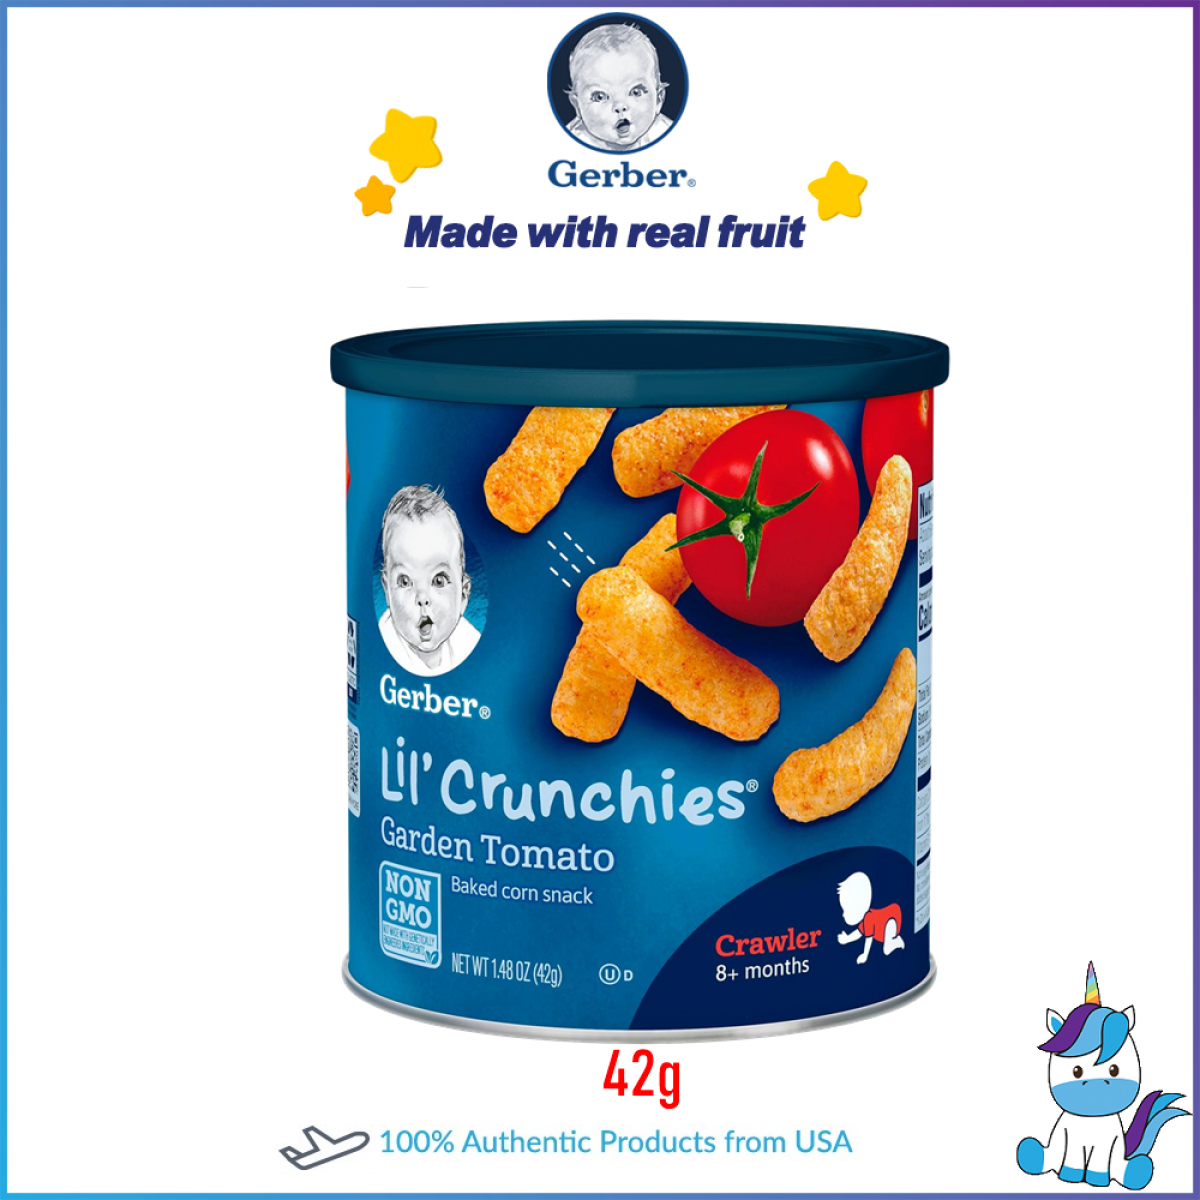 Gerber Lil Crunche Organic Brocolli and Garden Tomatoes - Pack of 2